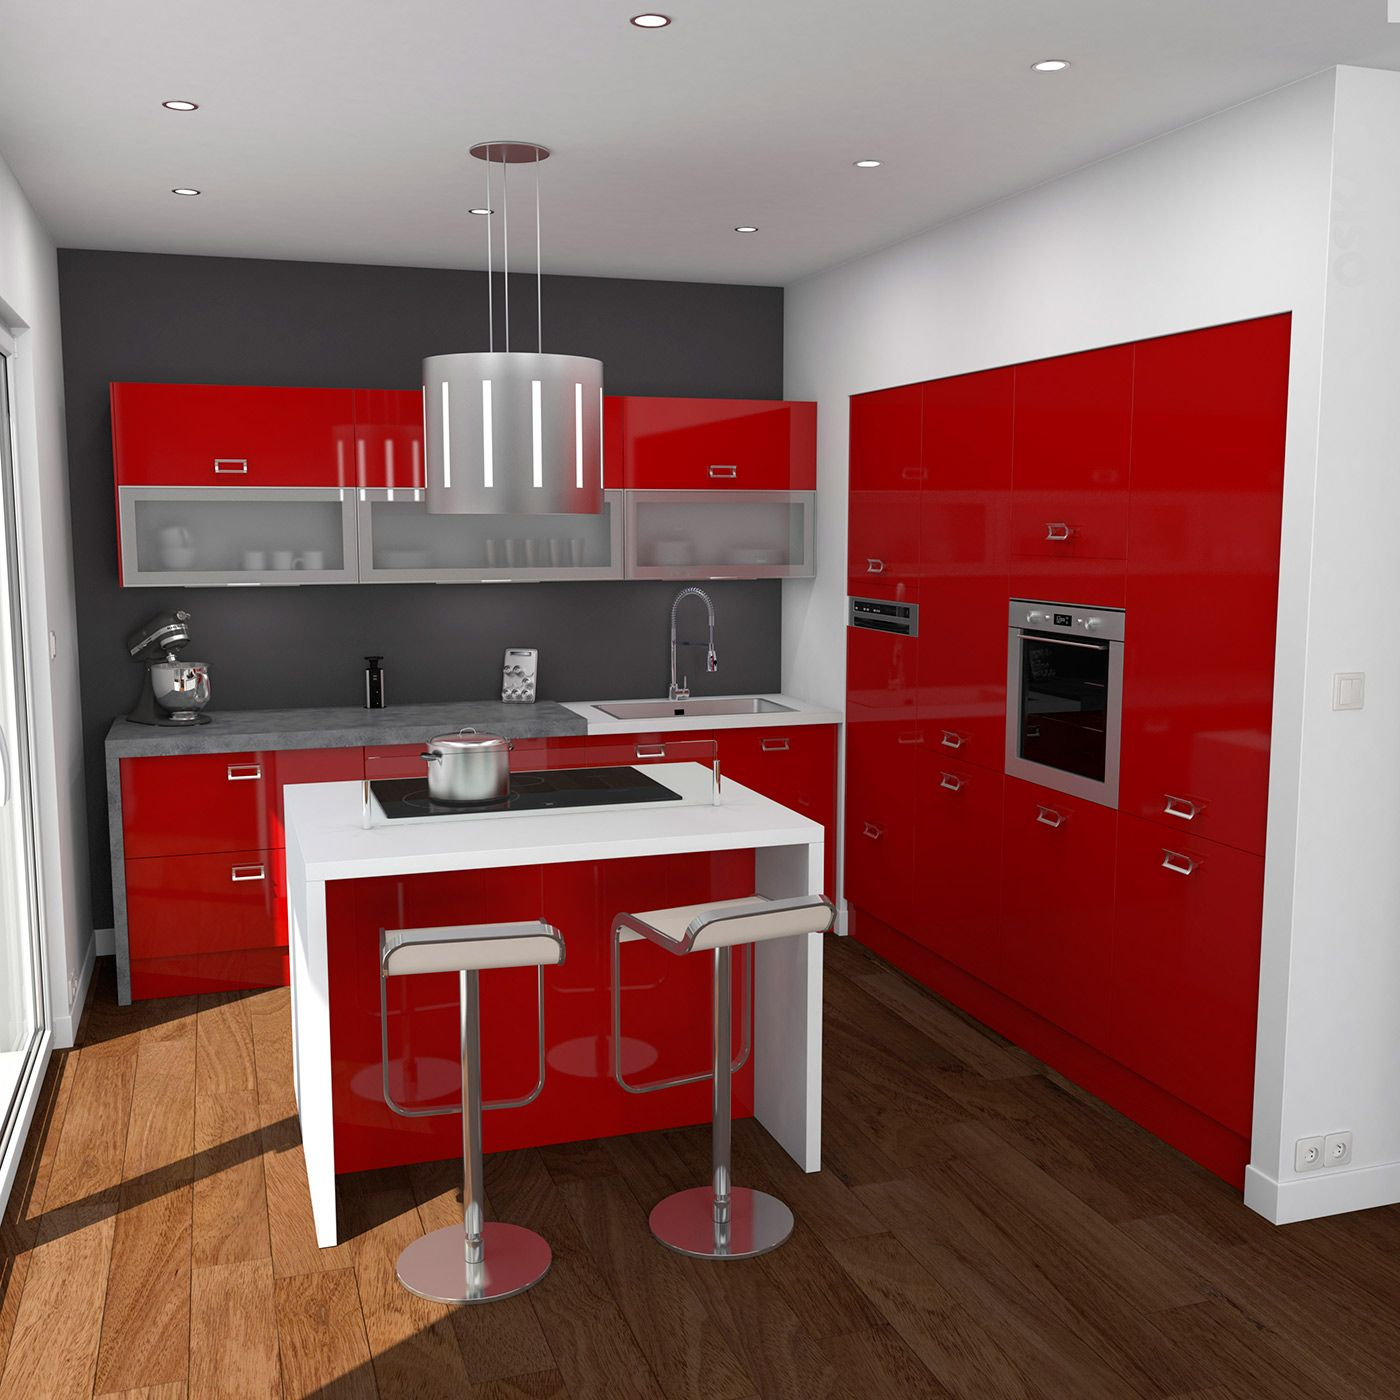 Cuisine Moderne En L Cuisine Rouge Moderne Finition Brillante Implantation En